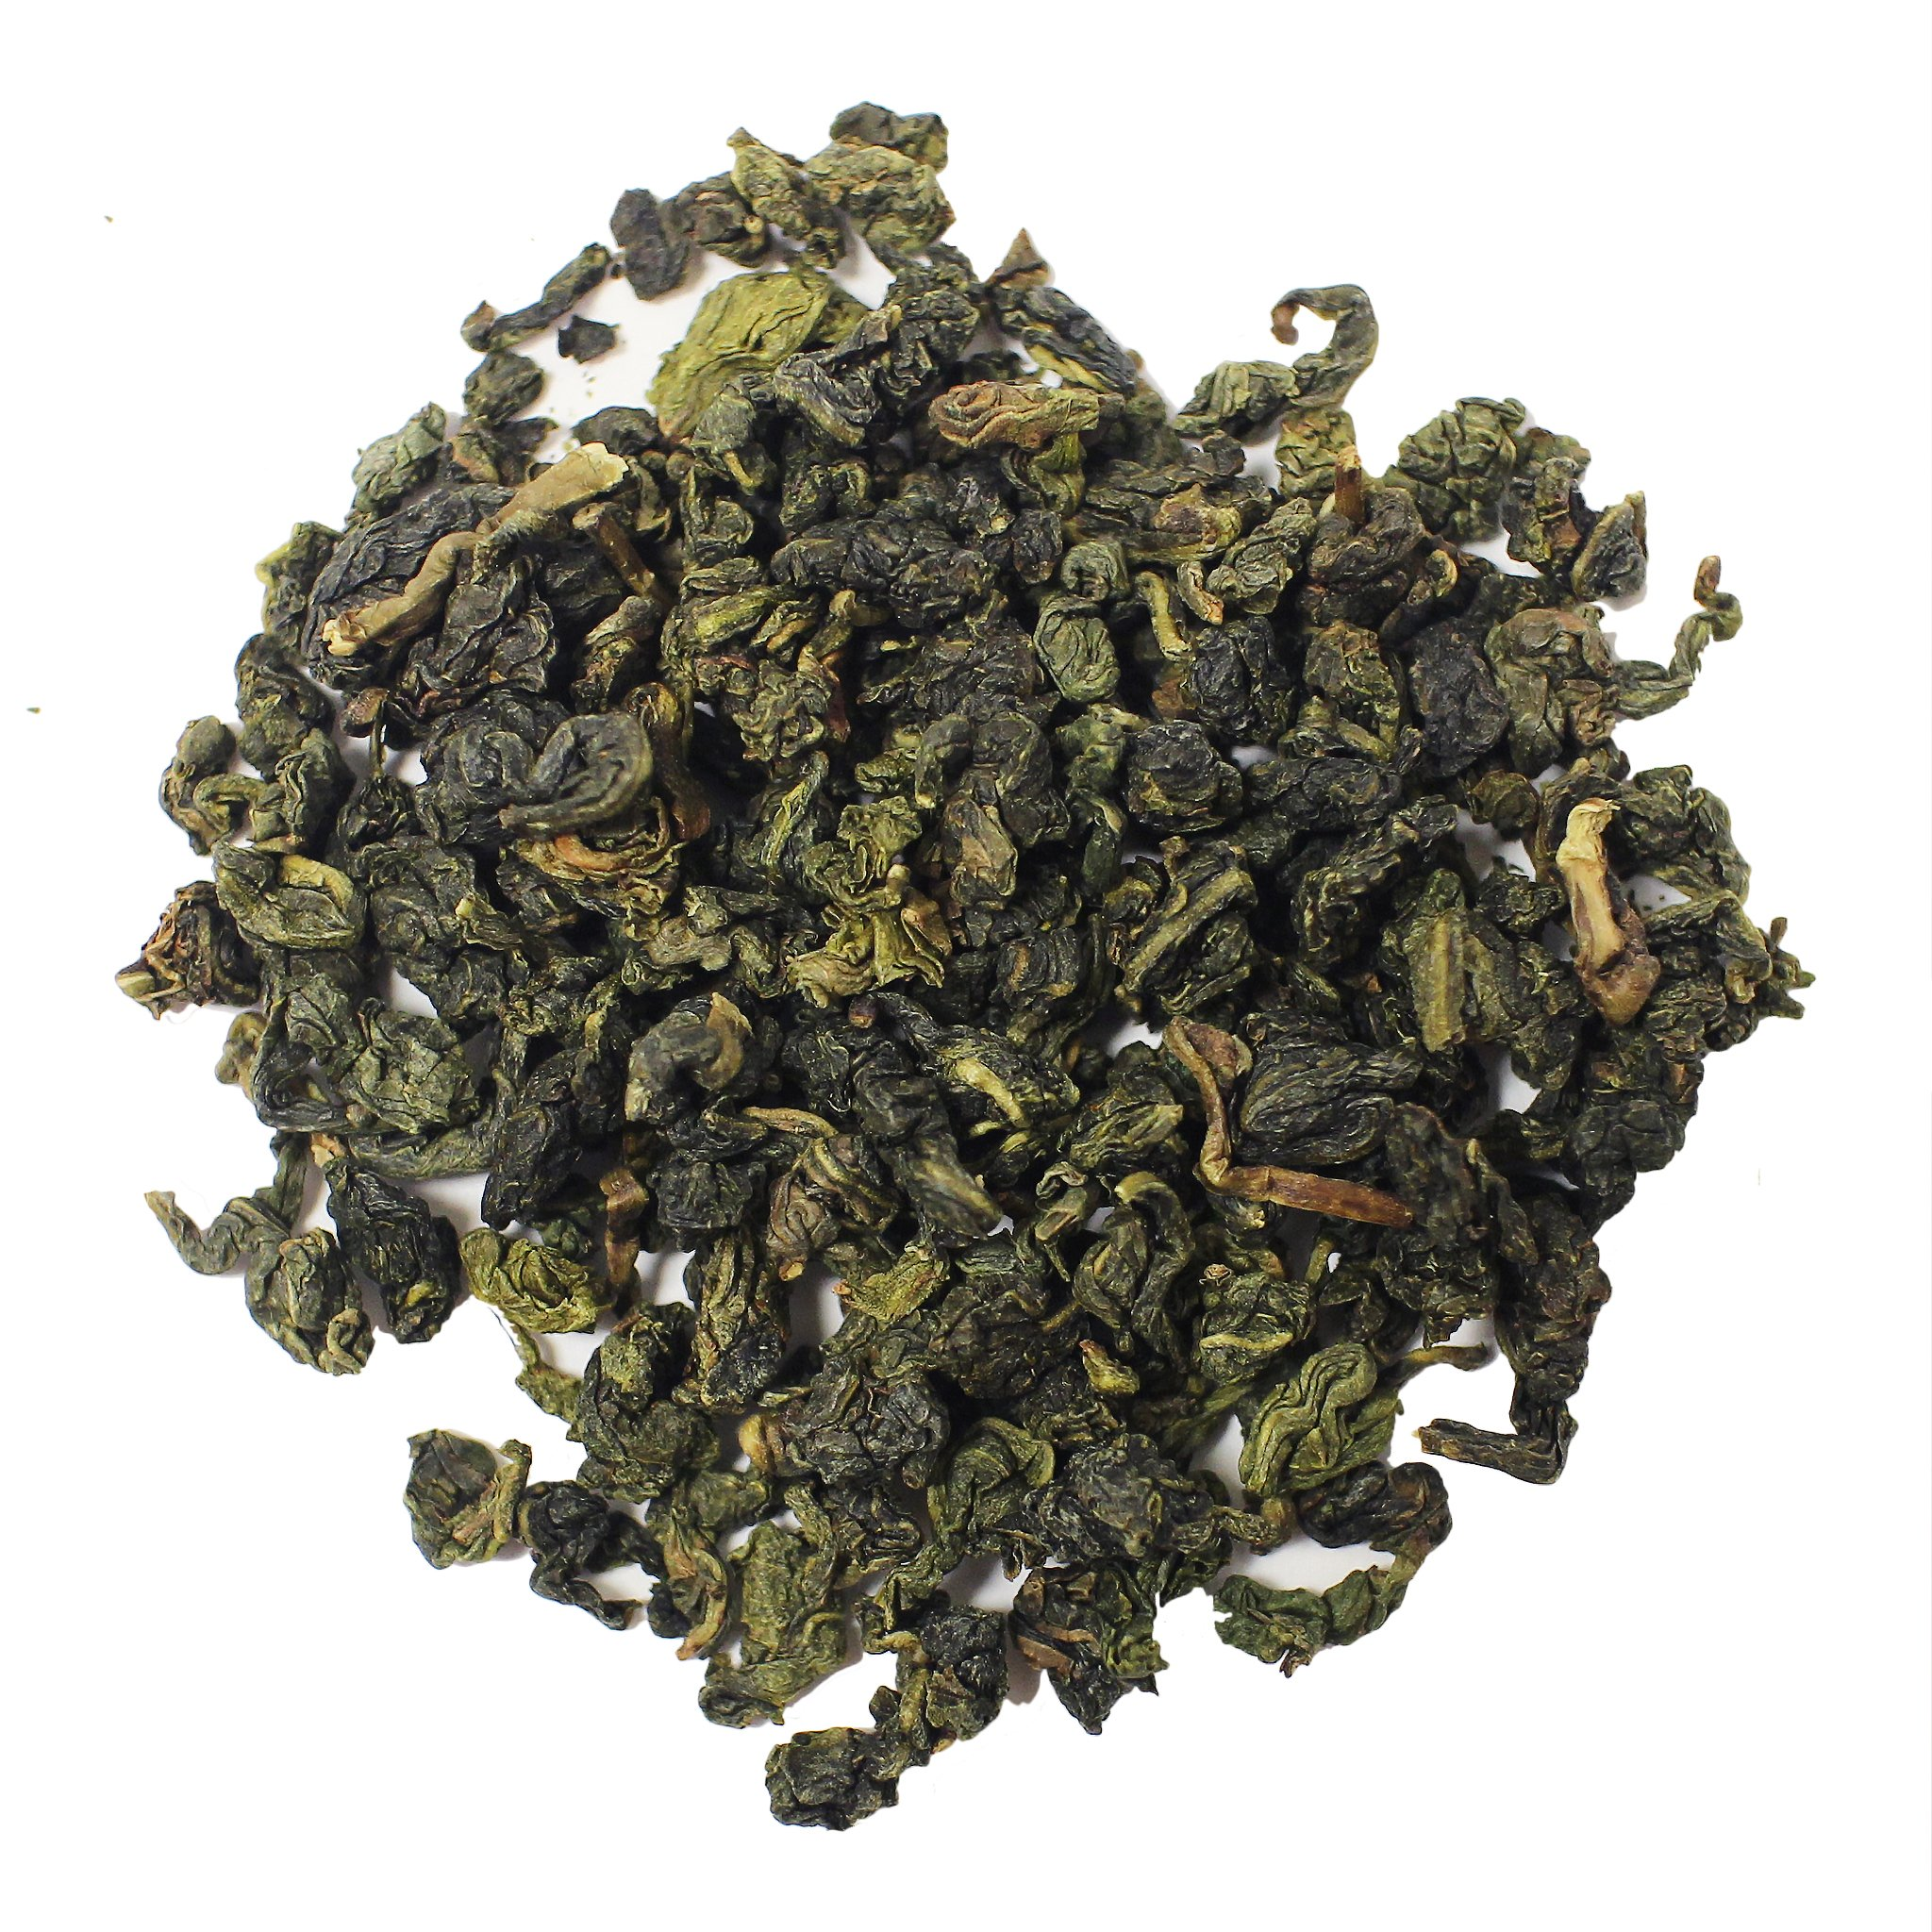 The Tea Farm - Huang Jin Gui Oolong Tea - Loose Leaf Oolong Tea (16 Ounce Bag)